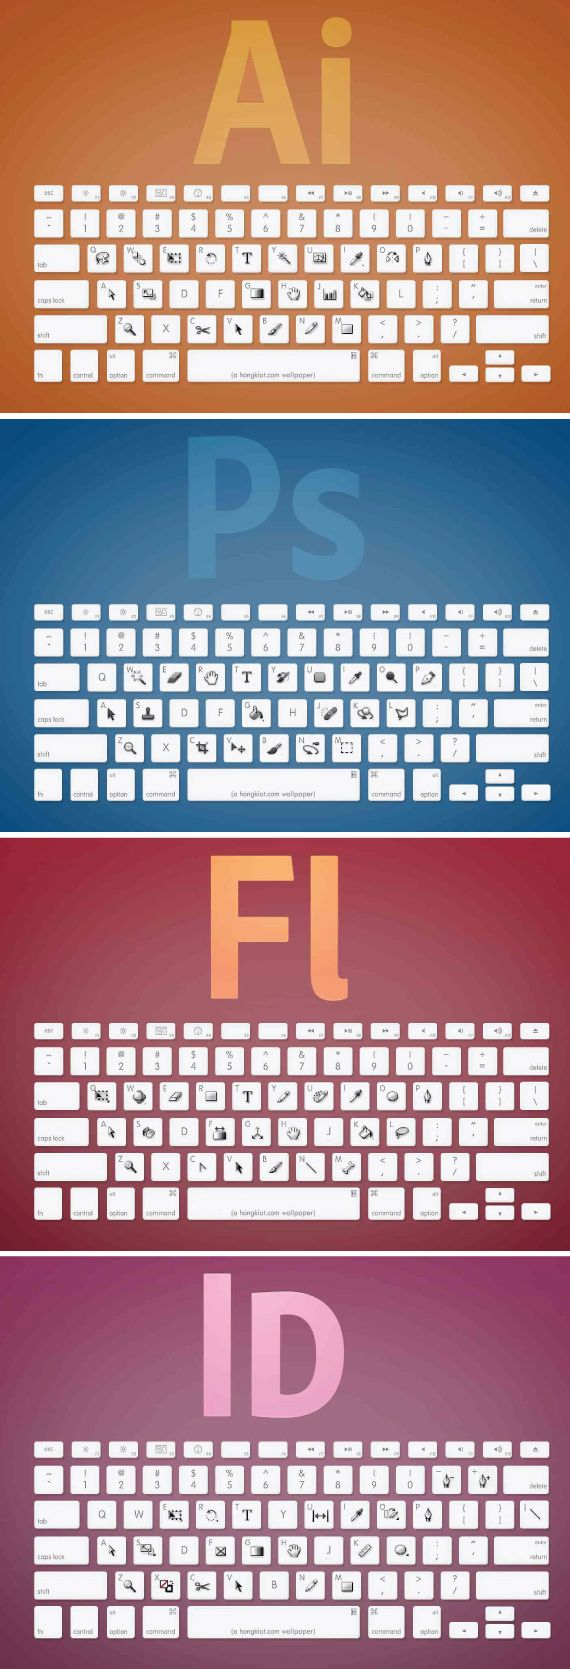 adobe illustrator keyboard shortcuts - how I had longed for something like this…